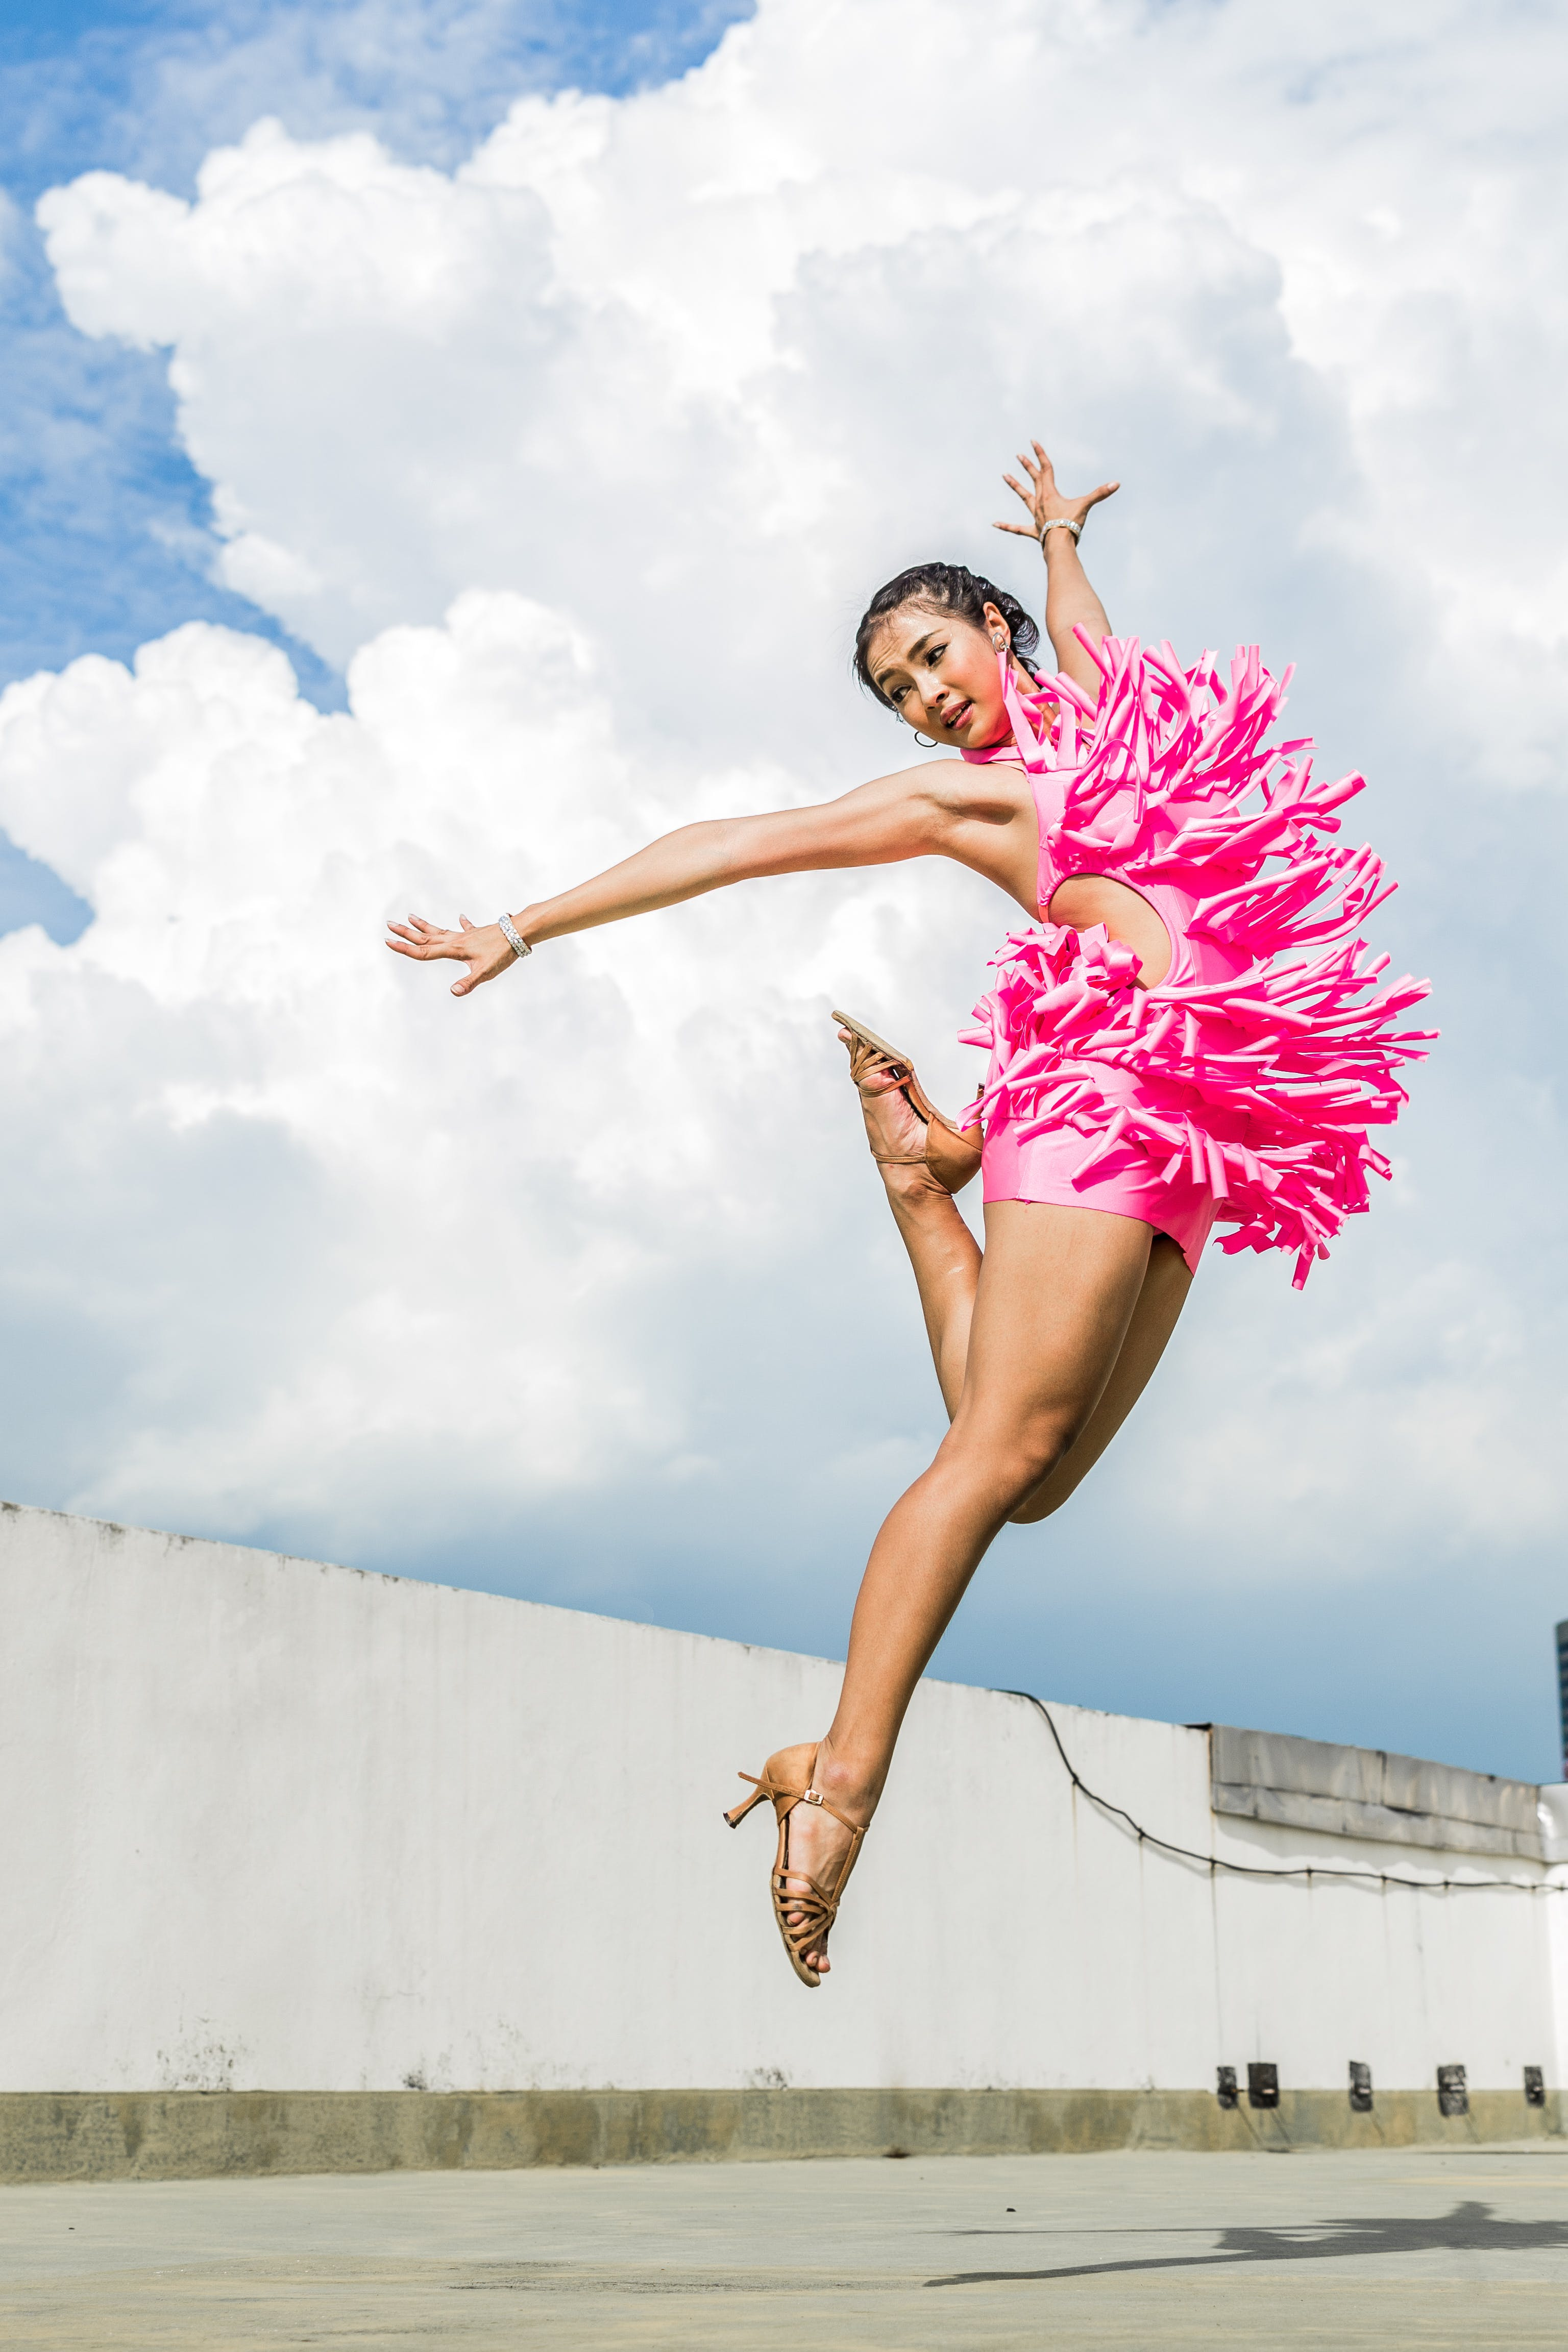 Woman in Pink Dress Doing Jump Shot While Extending Arms Under White Clouds